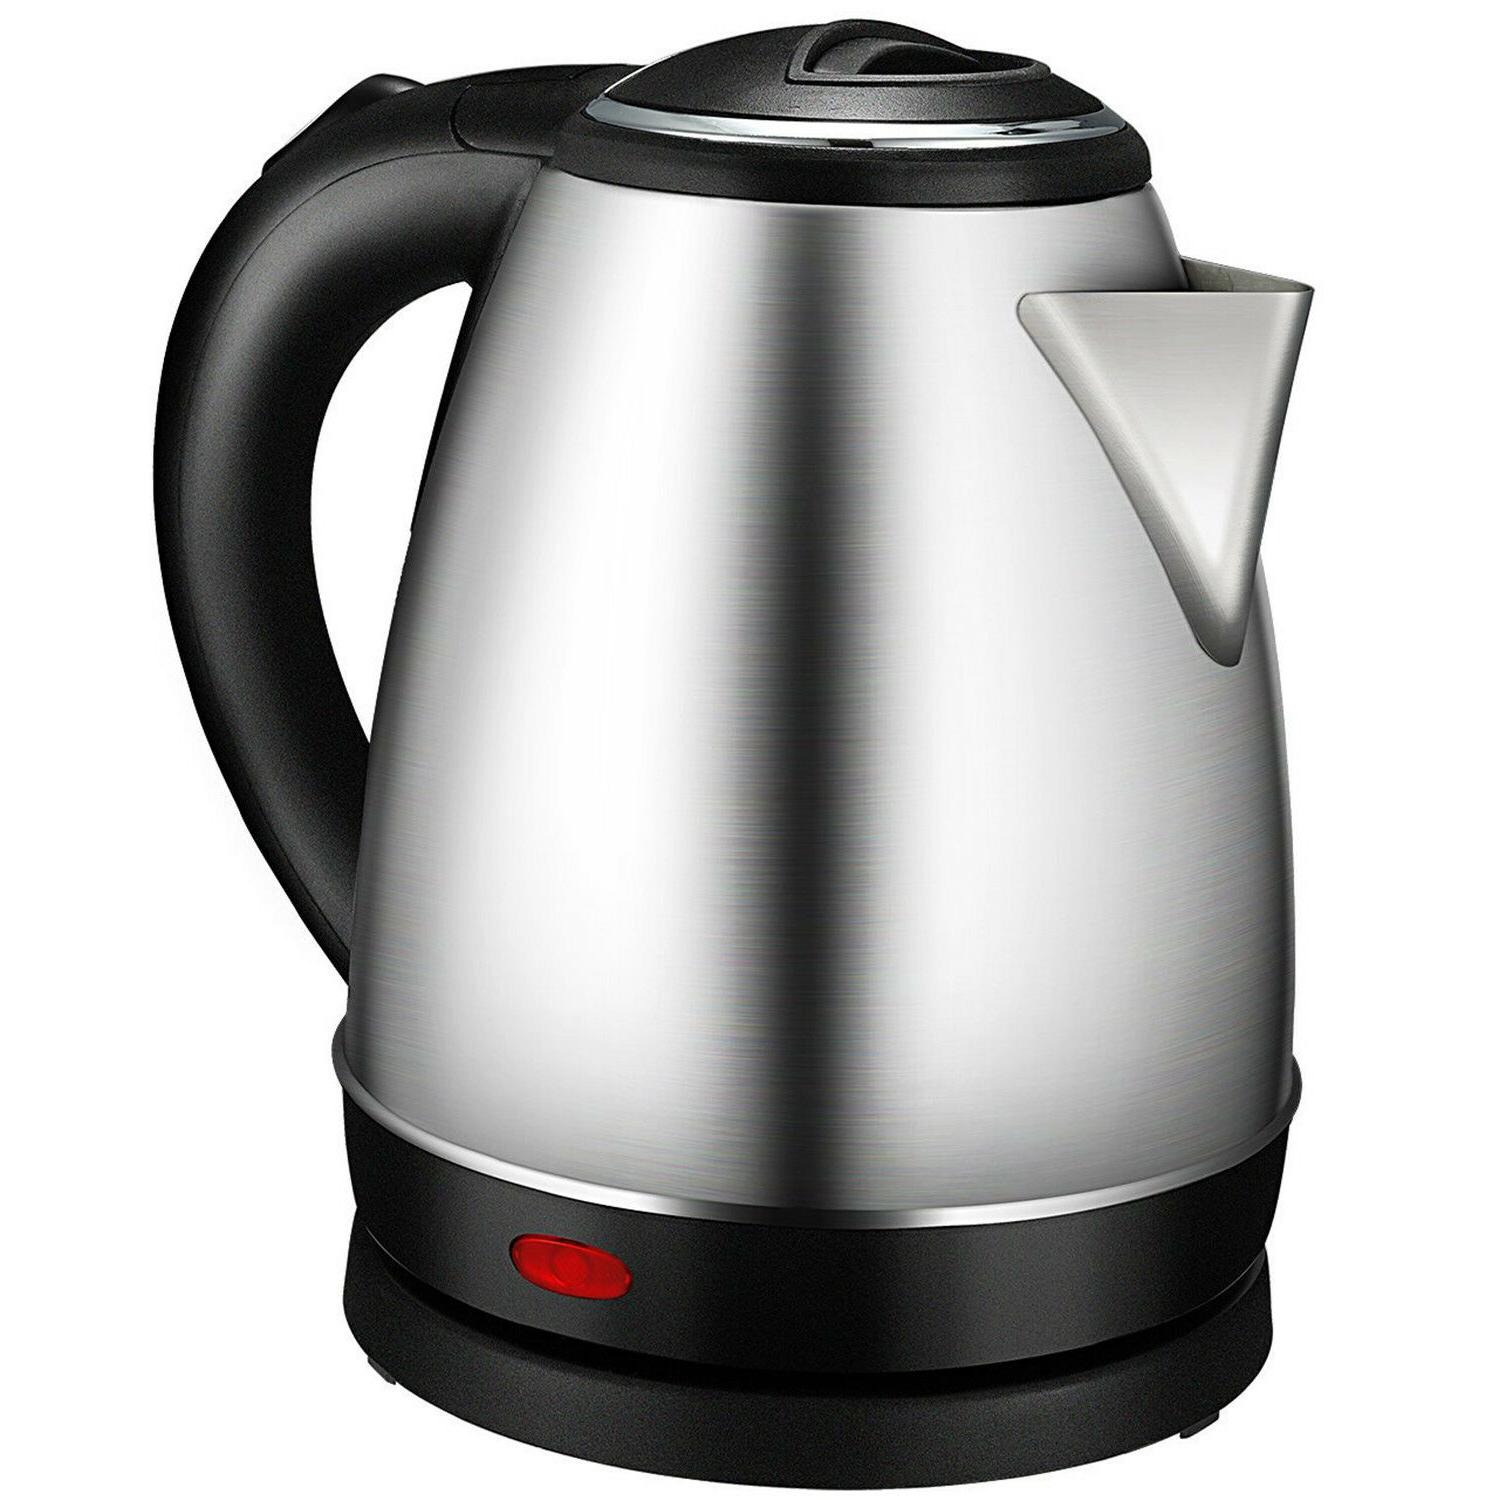 Stainless Steel Electric Kettle 1.7L 1500W Cordless Rapid Bo